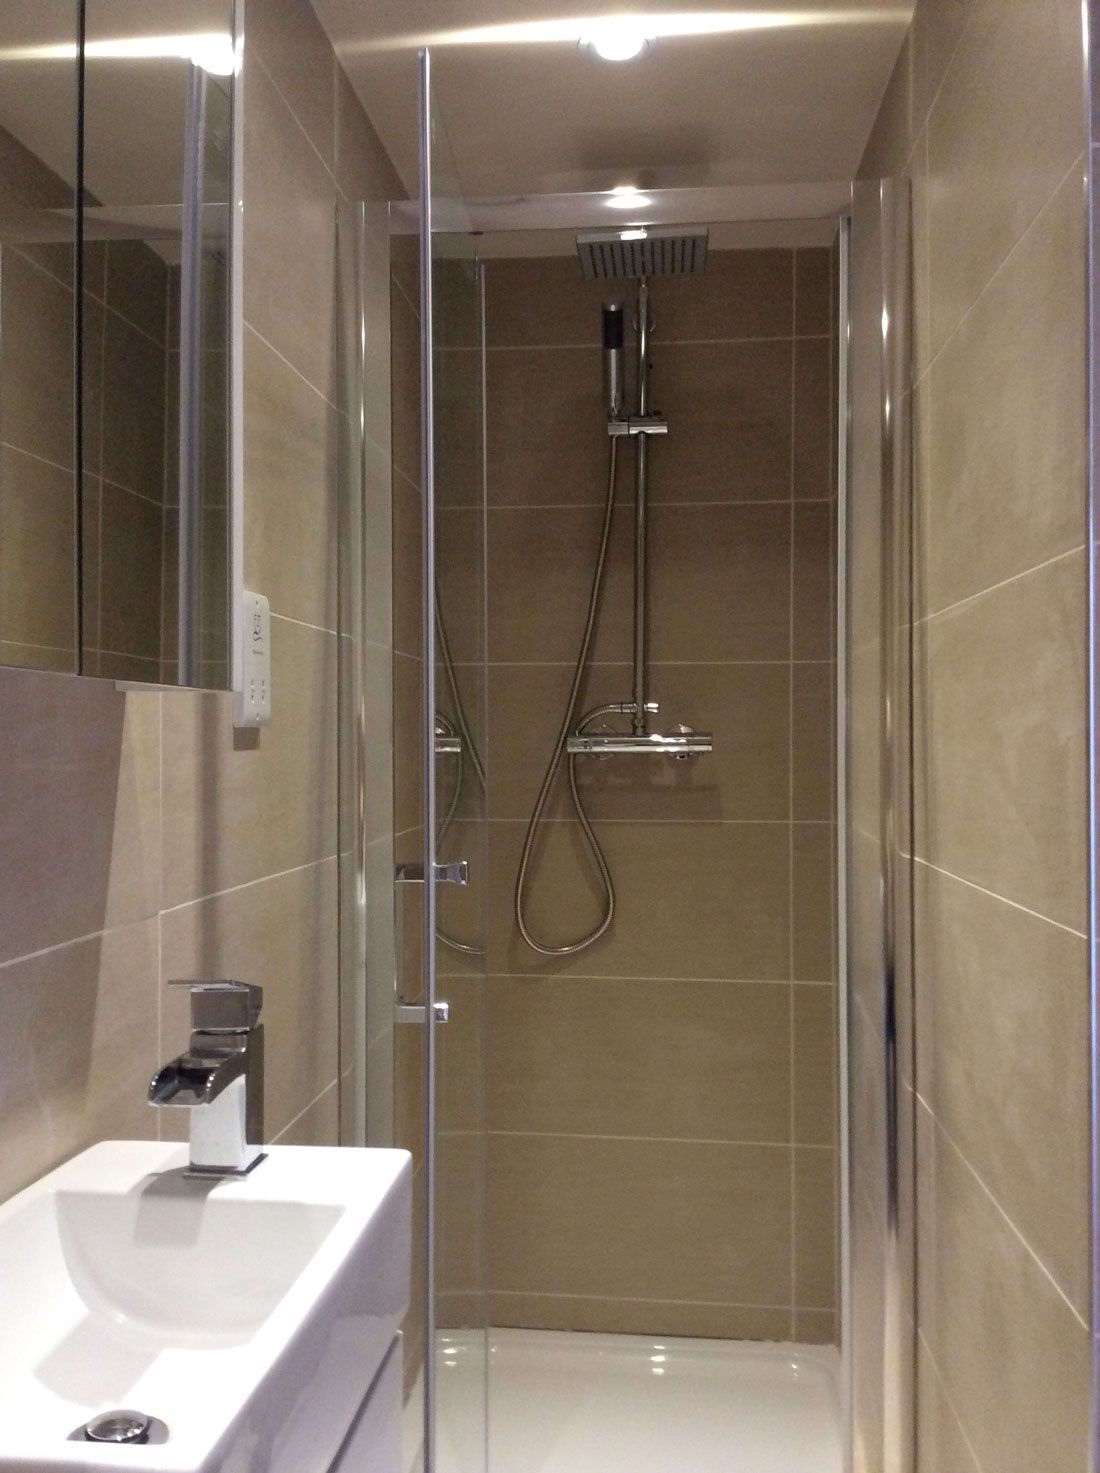 En suite bathrooms ideas - The En Suite Shower Room Is Fully Tiled In Dark Cream Porcelain And Features A Wet